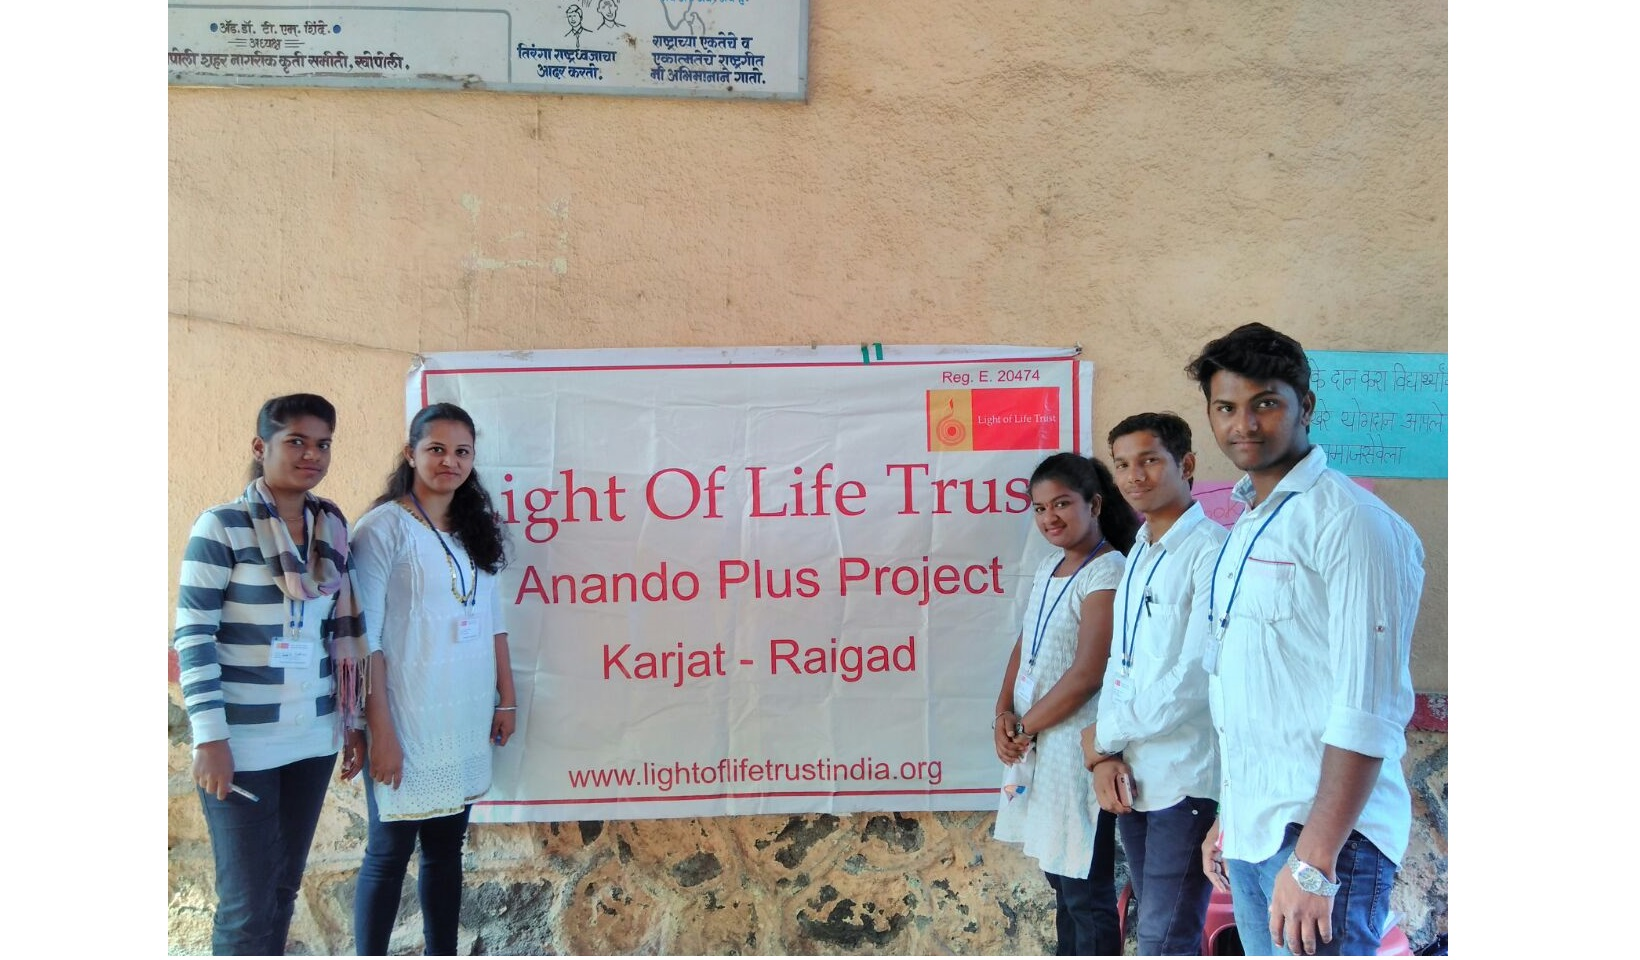 Project Anando Plus